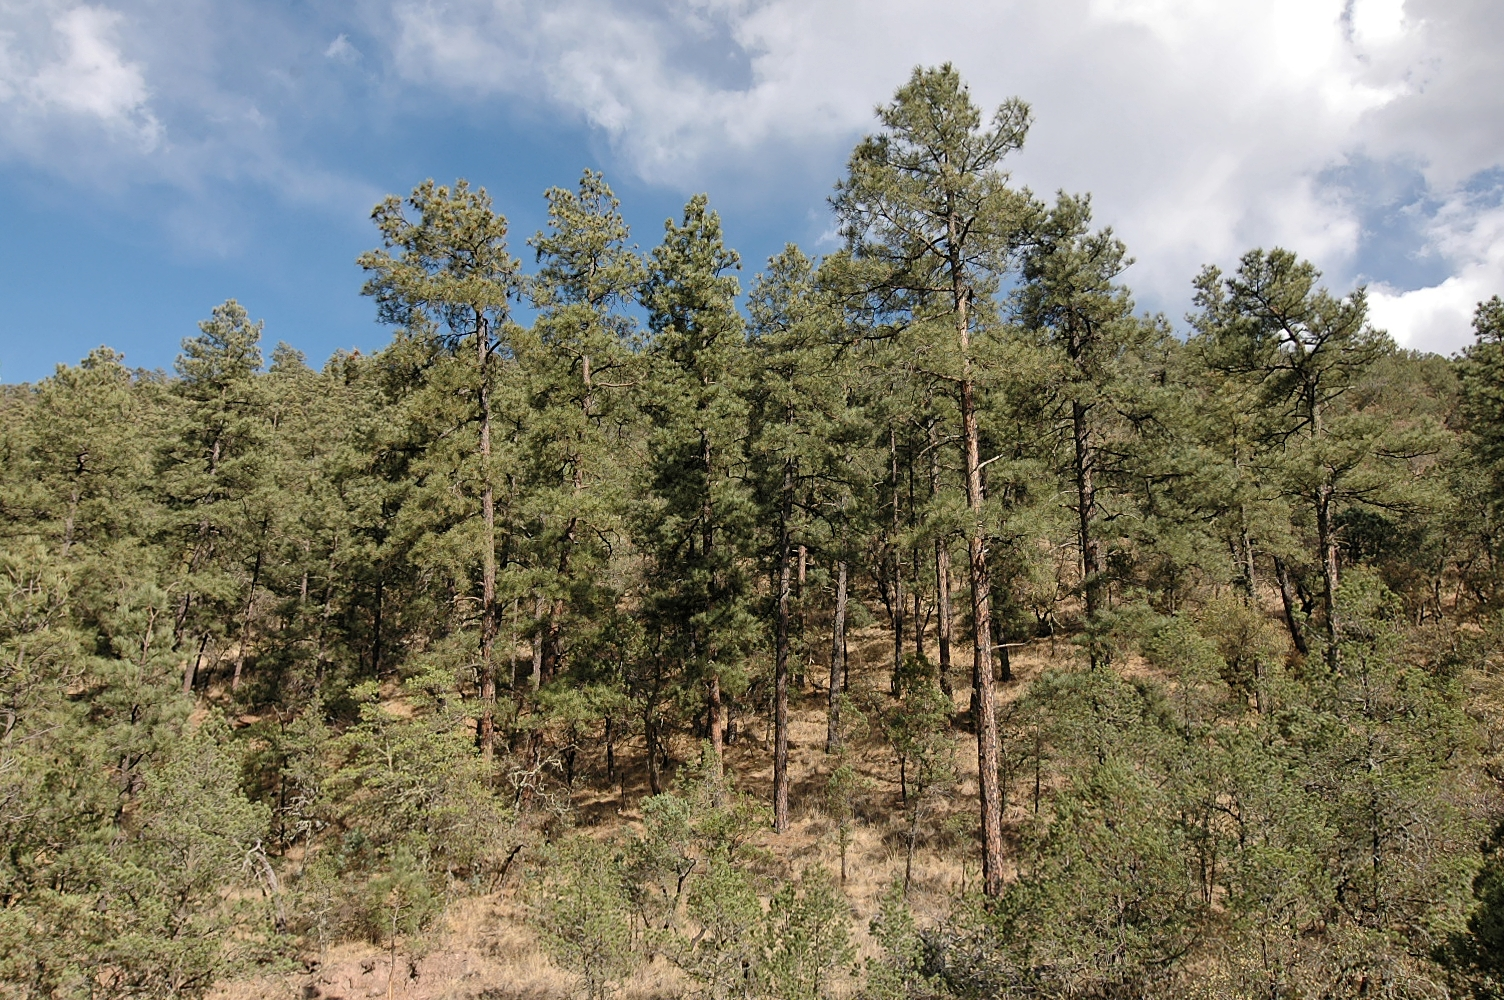 <p>Texas A&M Forest Service is helping restore the threatened, iconic Ponderosa Pine forests of West Texas. After a myriad of environmental stresses destroyed nearly 75